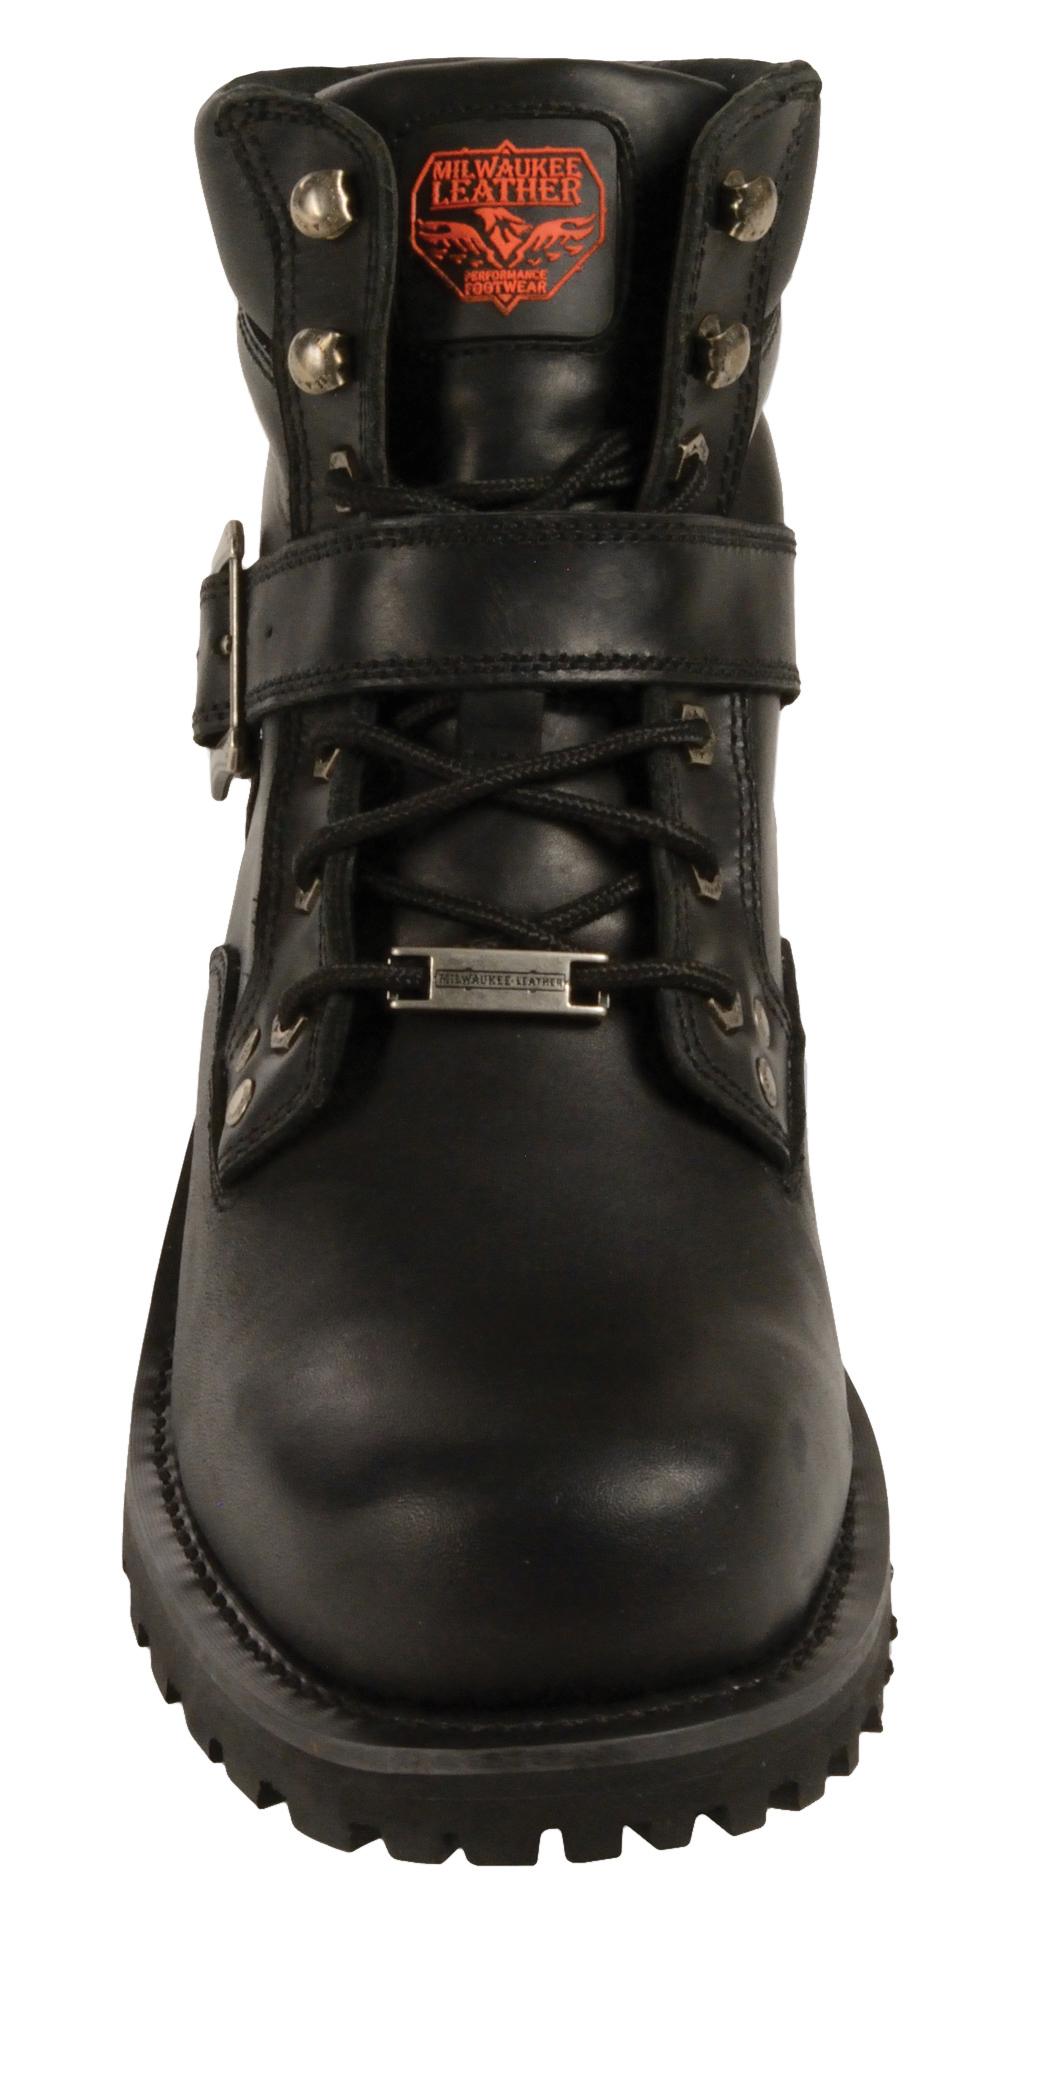 motorcycle boots with side buckle